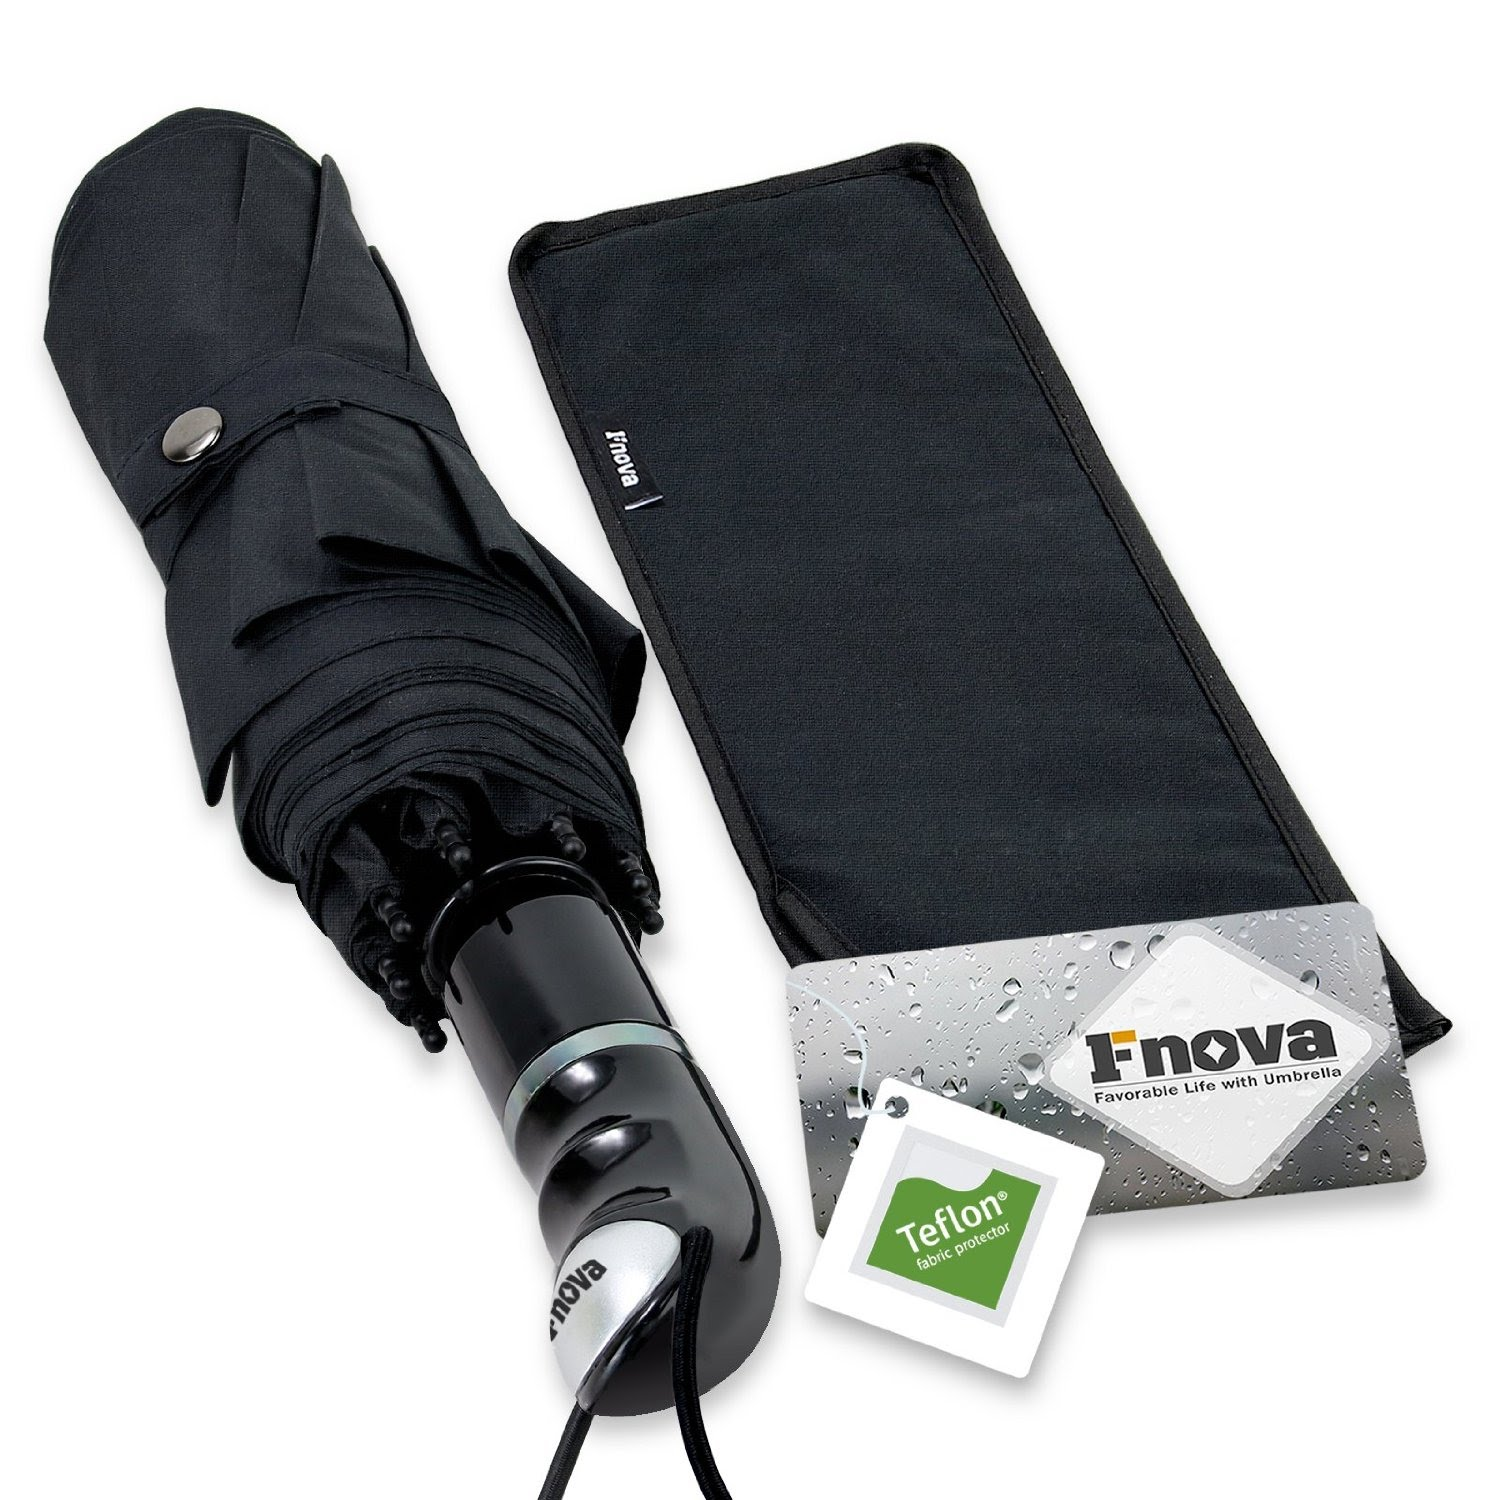 Information Helpful Fnova 45 Inch Travel Umbrella With Dupont Work Prolux Lipo Charger This Balancer Can Be Used To 2 3 If You Want Know All Detail Please Click Read More We Recommend And After Will Get Make Sure Are Worth Buy